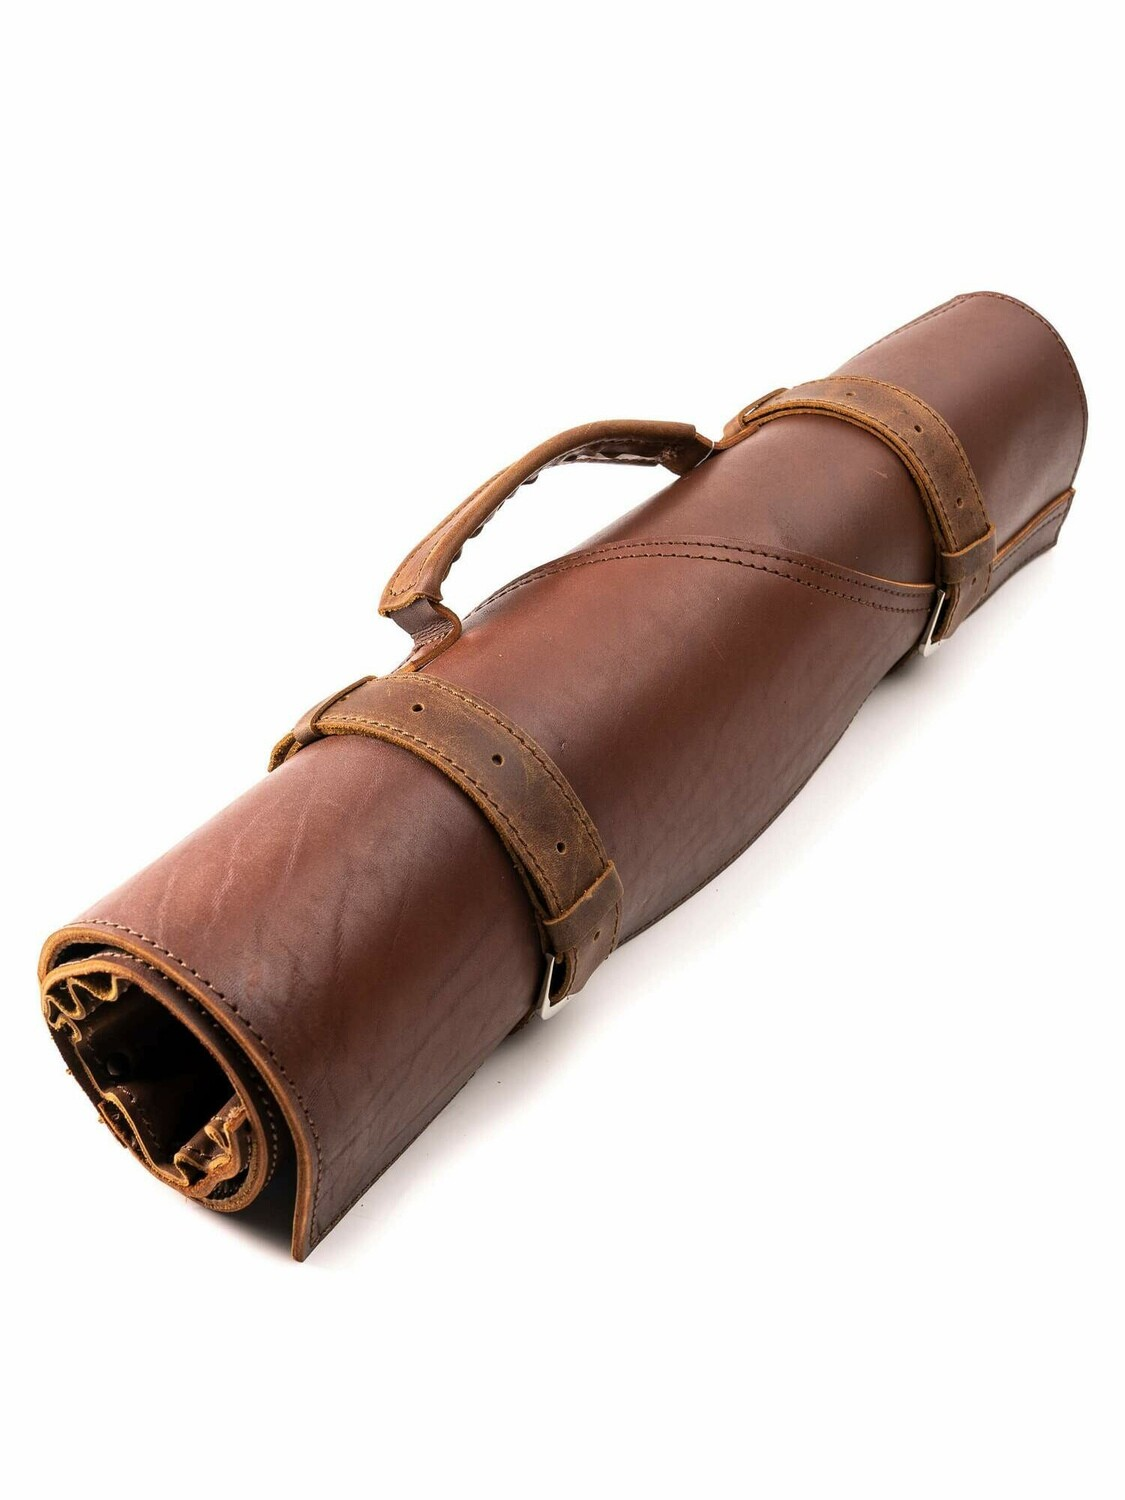 ROLL-LR545 - LEATHER BAG SCREW FOR KNIVES